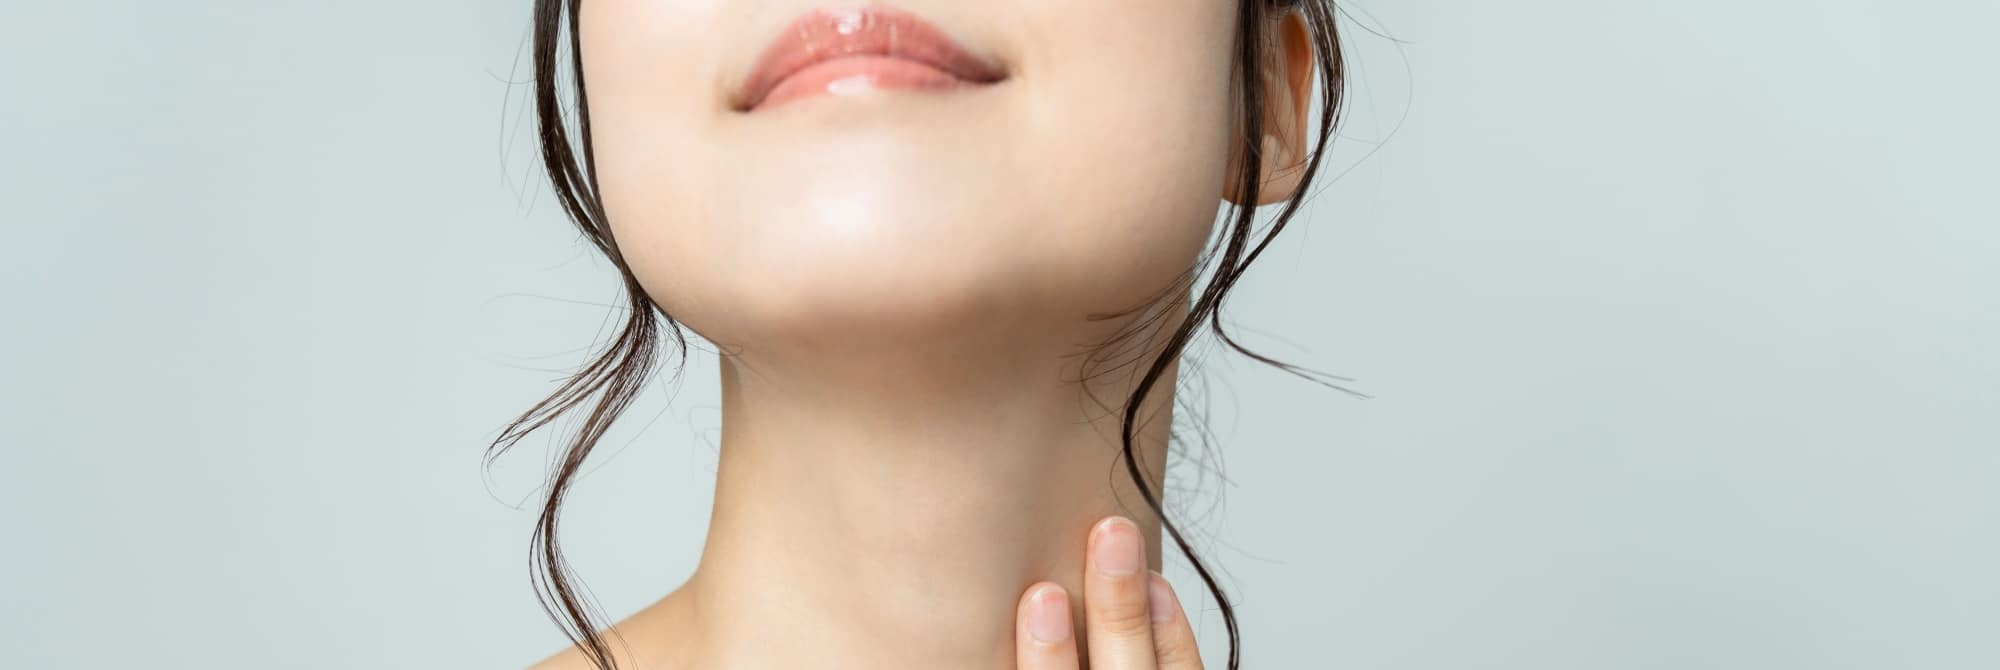 Woman with a long neck showing no double chin, Kybella vs CoolSculpting